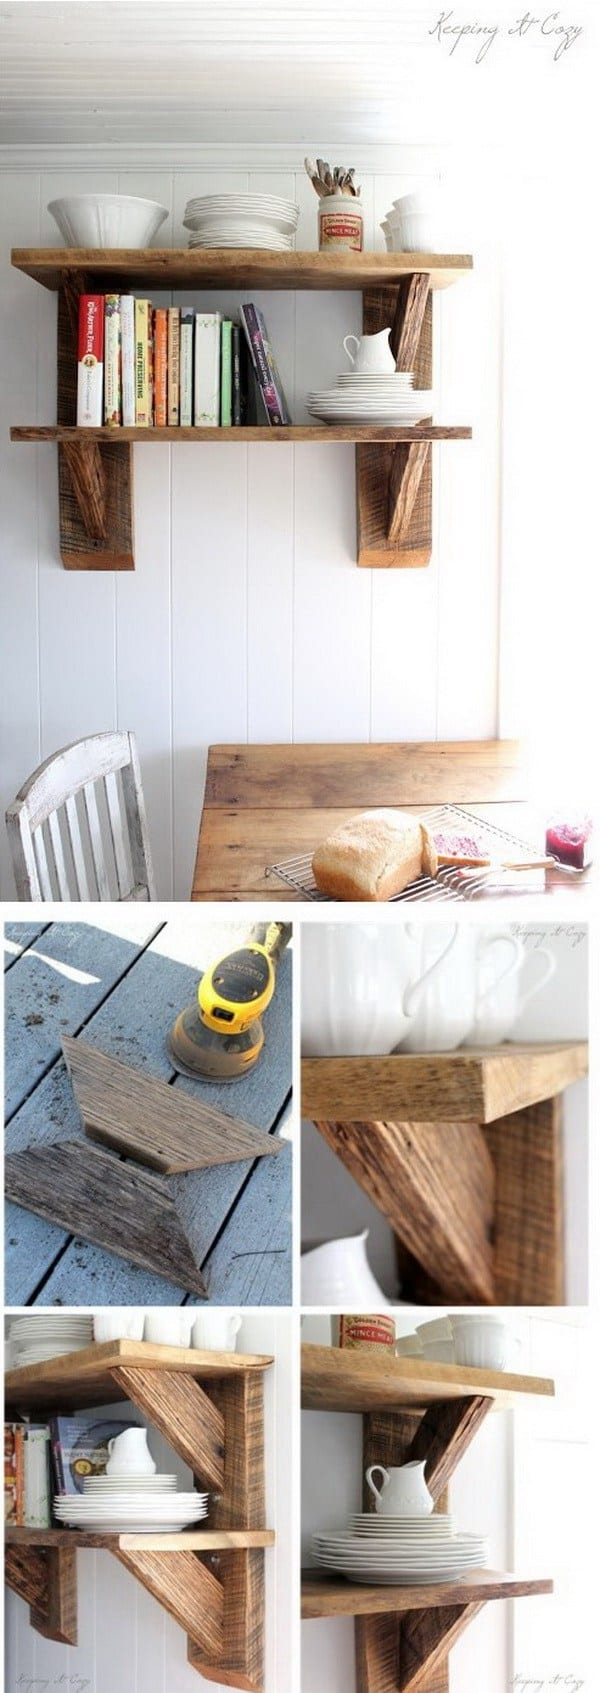 DIY shelves barnwood shelf